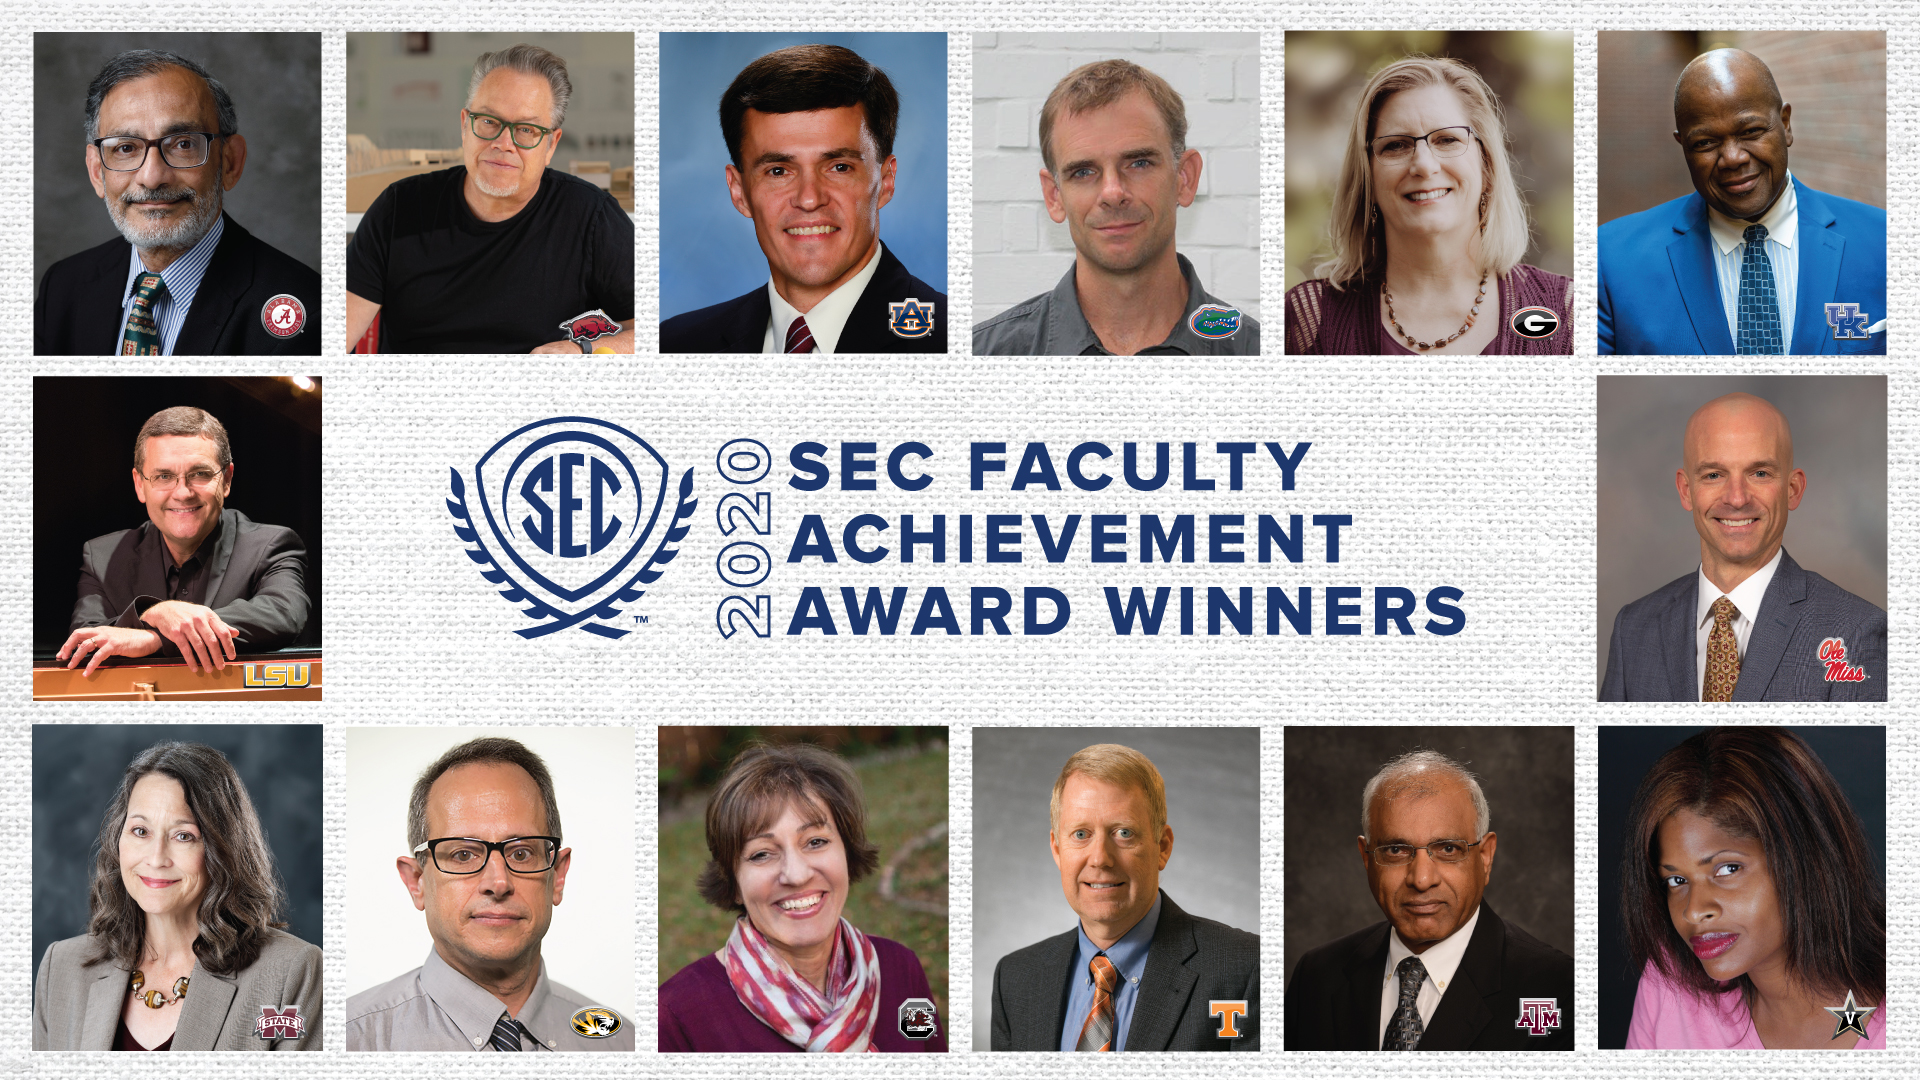 2020 SEC Faculty Achievement Awards Highlight Strength in Classrooms, Labs